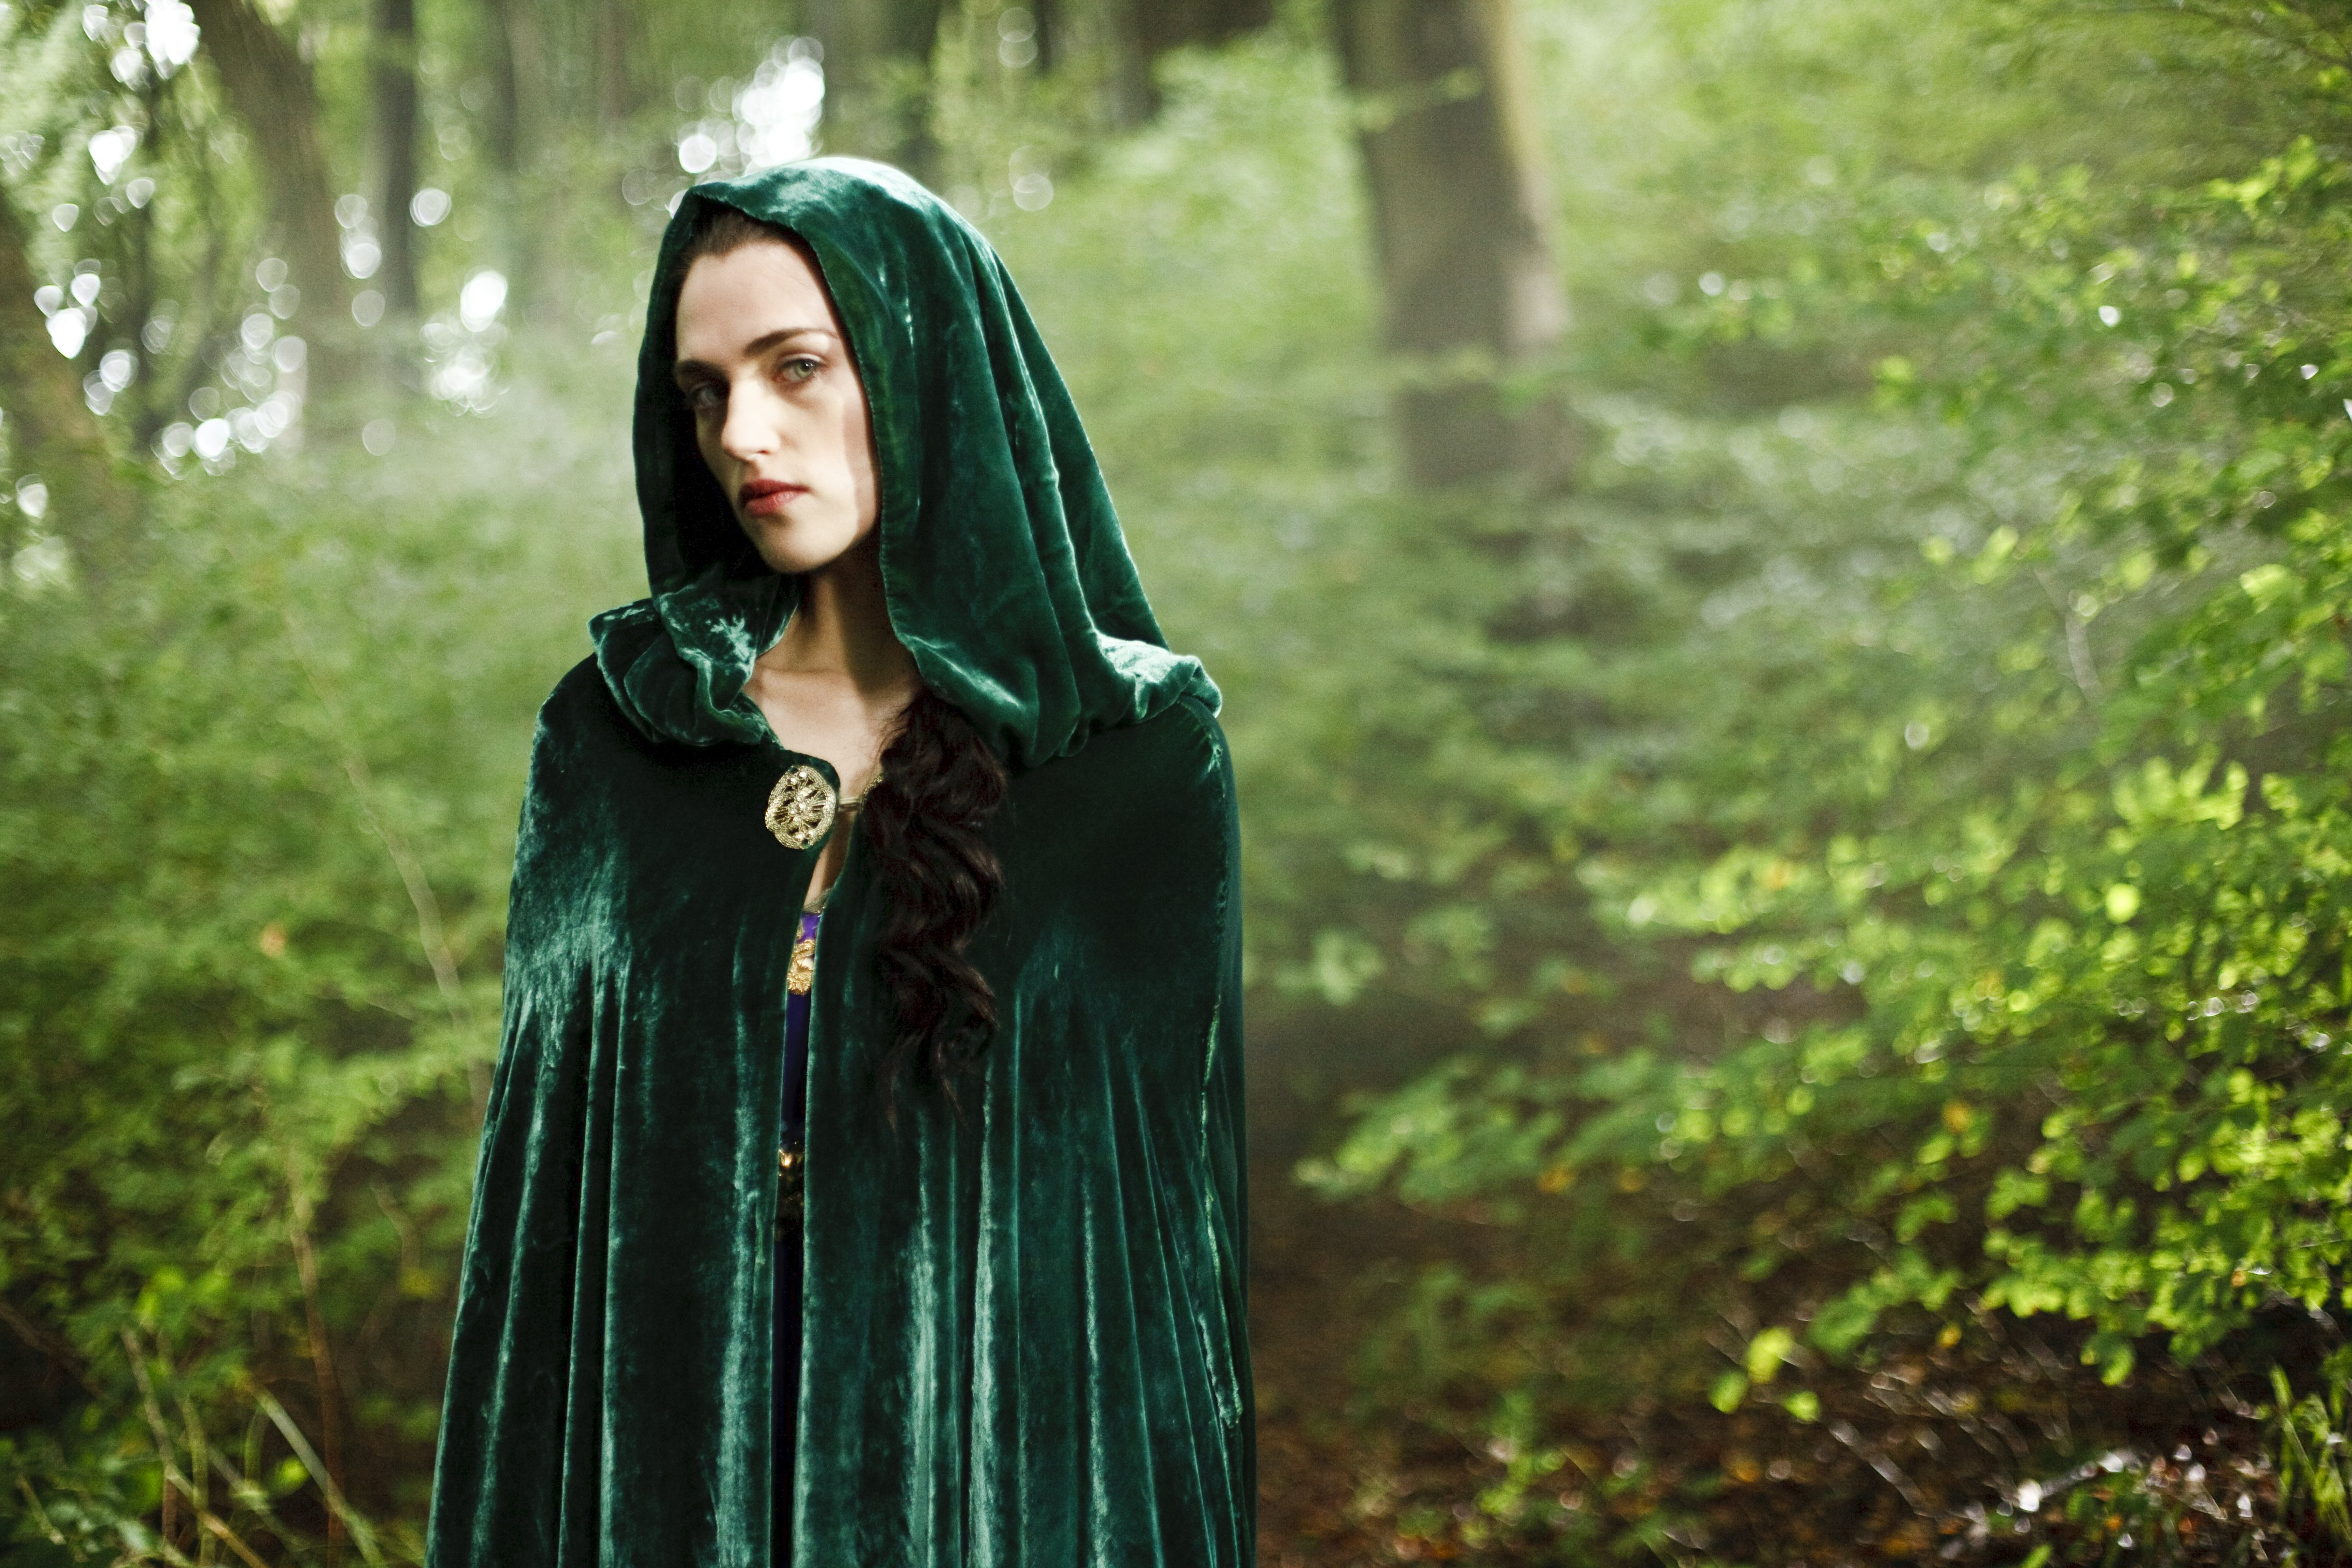 merlin and morgana dating Katie mcgrath biography with mcgrath's most notable role up to date has been the role of lady morgana in the bbc one show named as merlin boyfriend and dating.